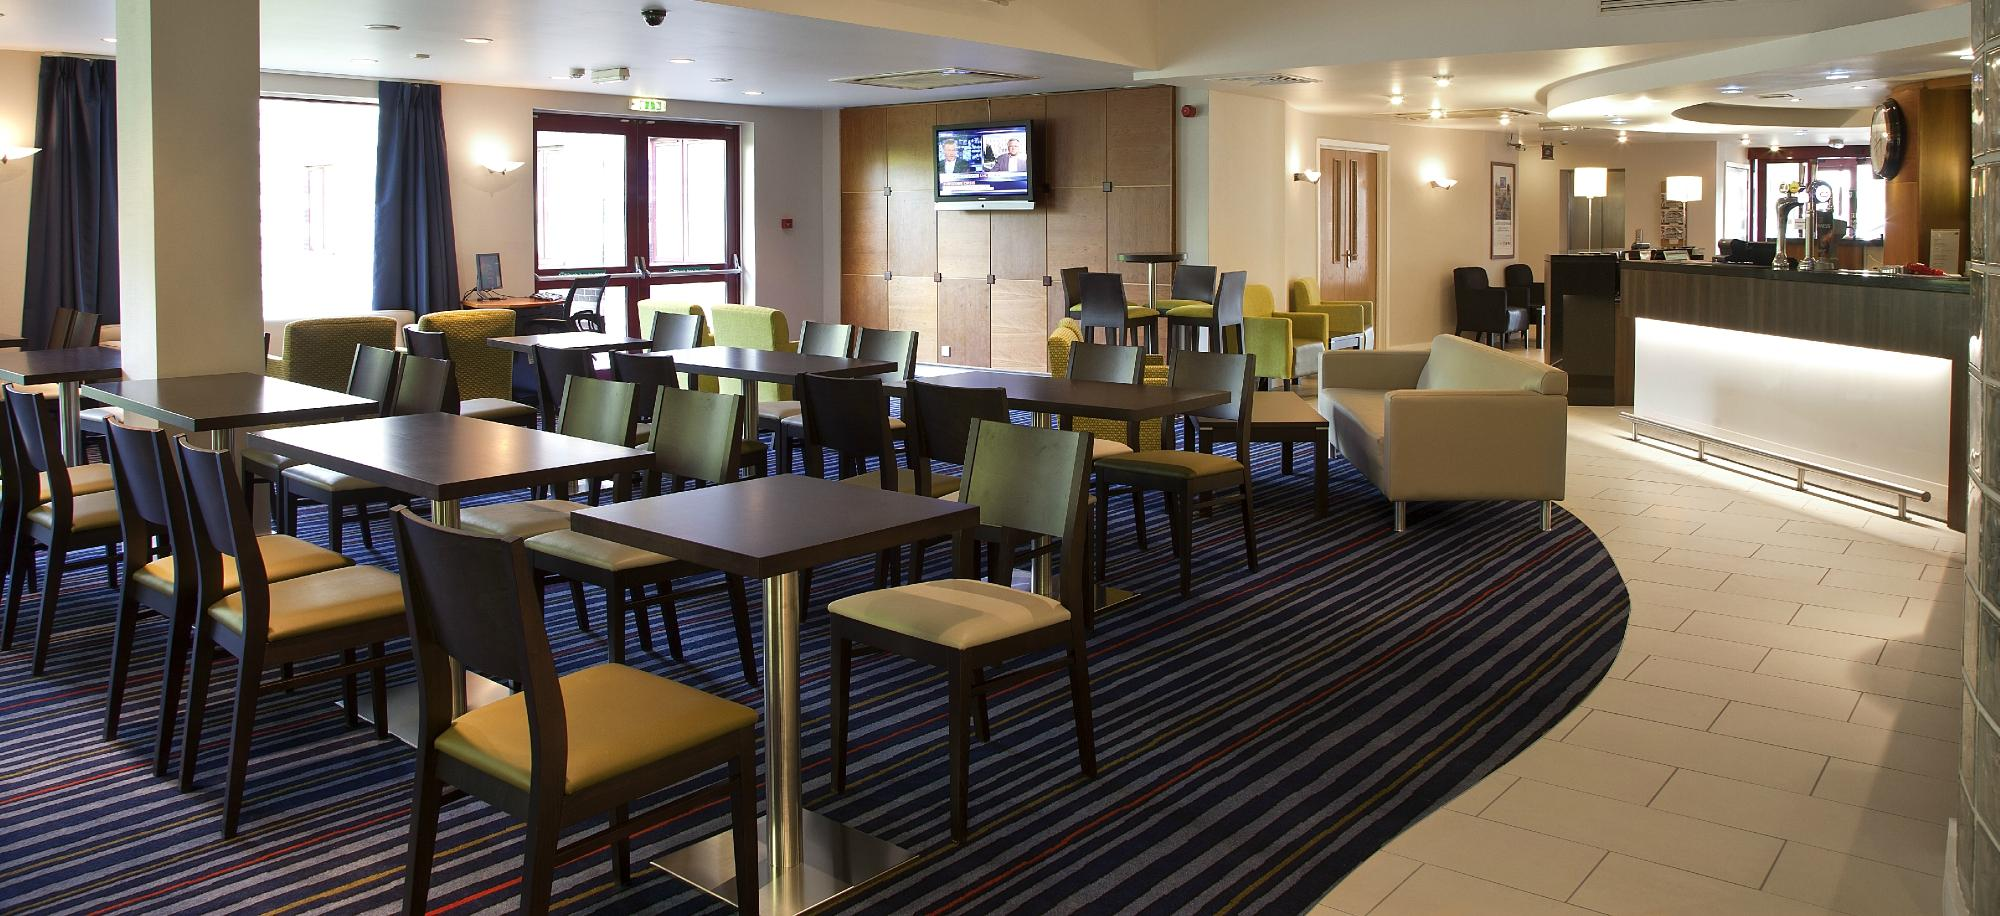 Premier Inn Greenock Hotel (Scotland) - UPDATED 2016 Reviews ...